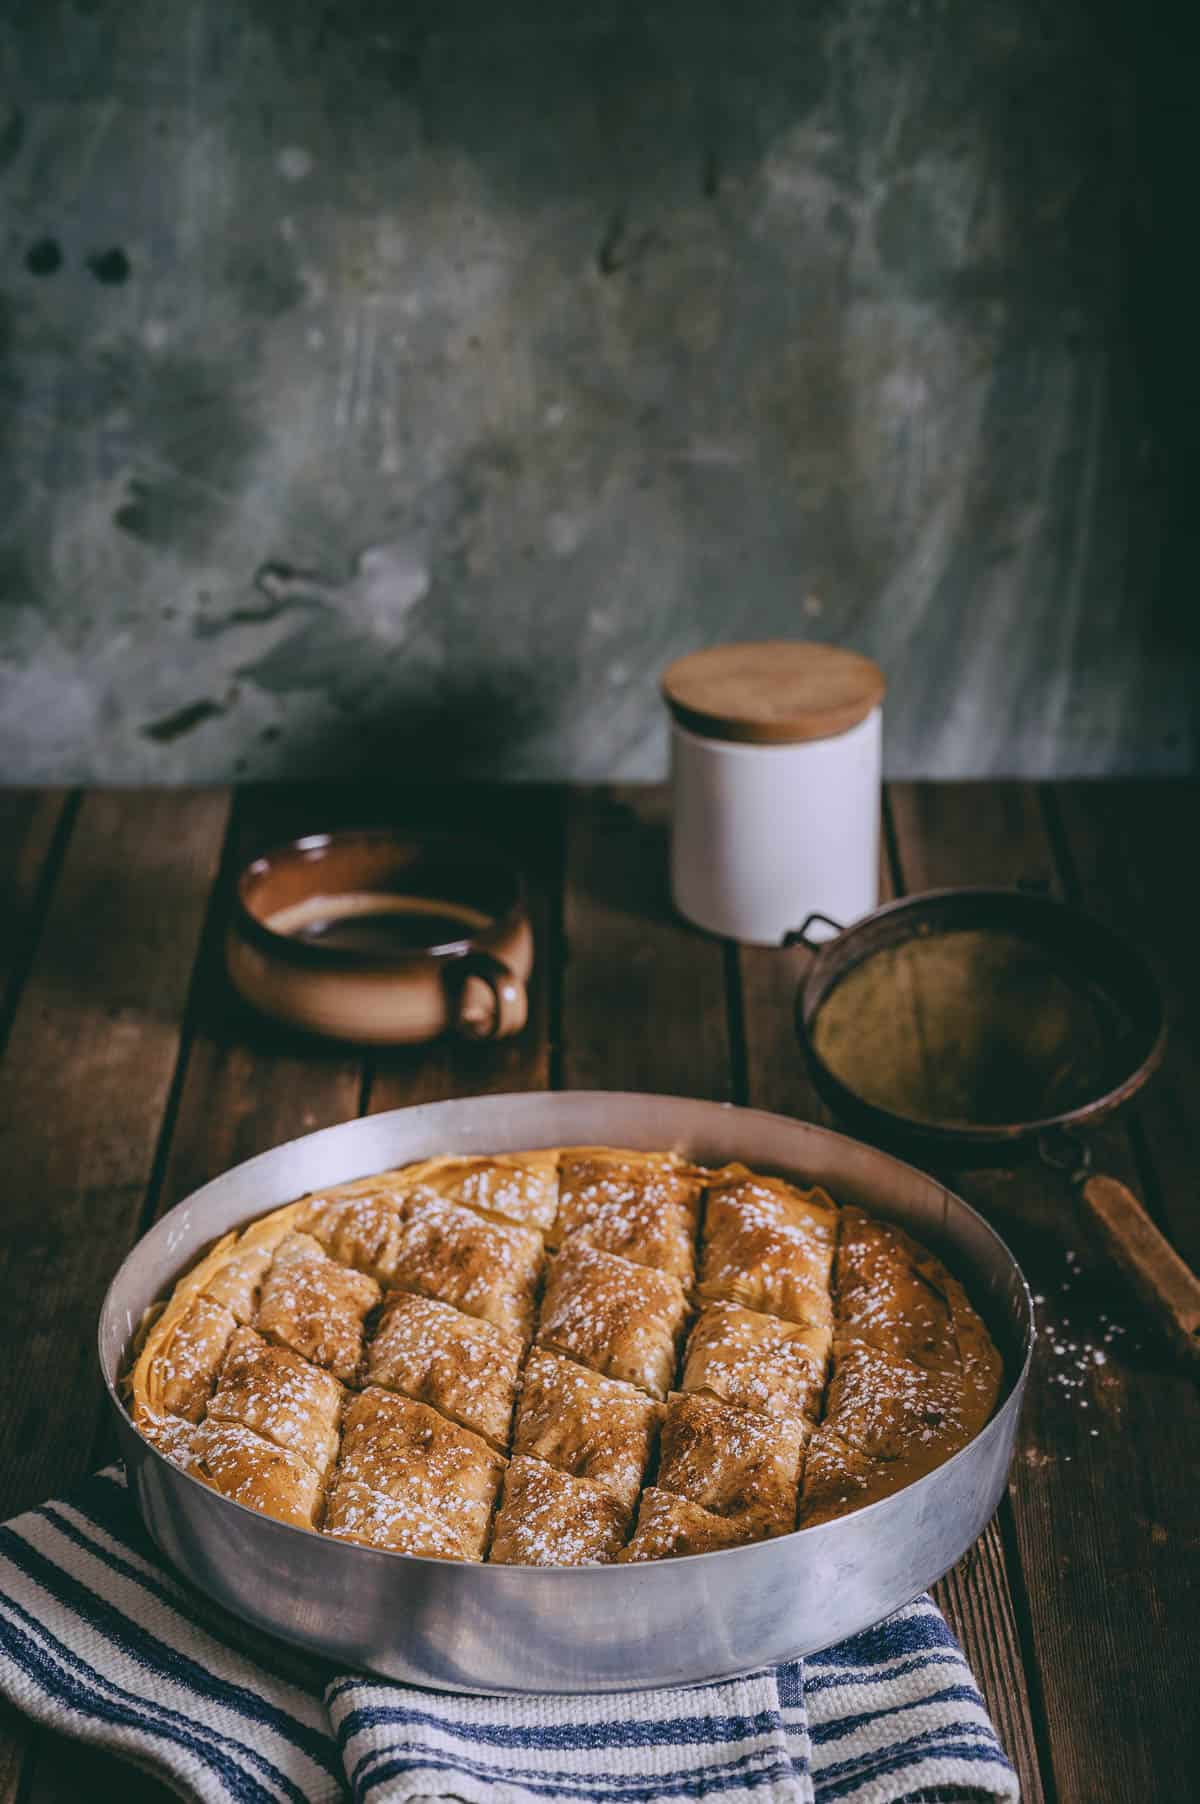 Greek pumpkin pie served in a baking dish on a wooden table.